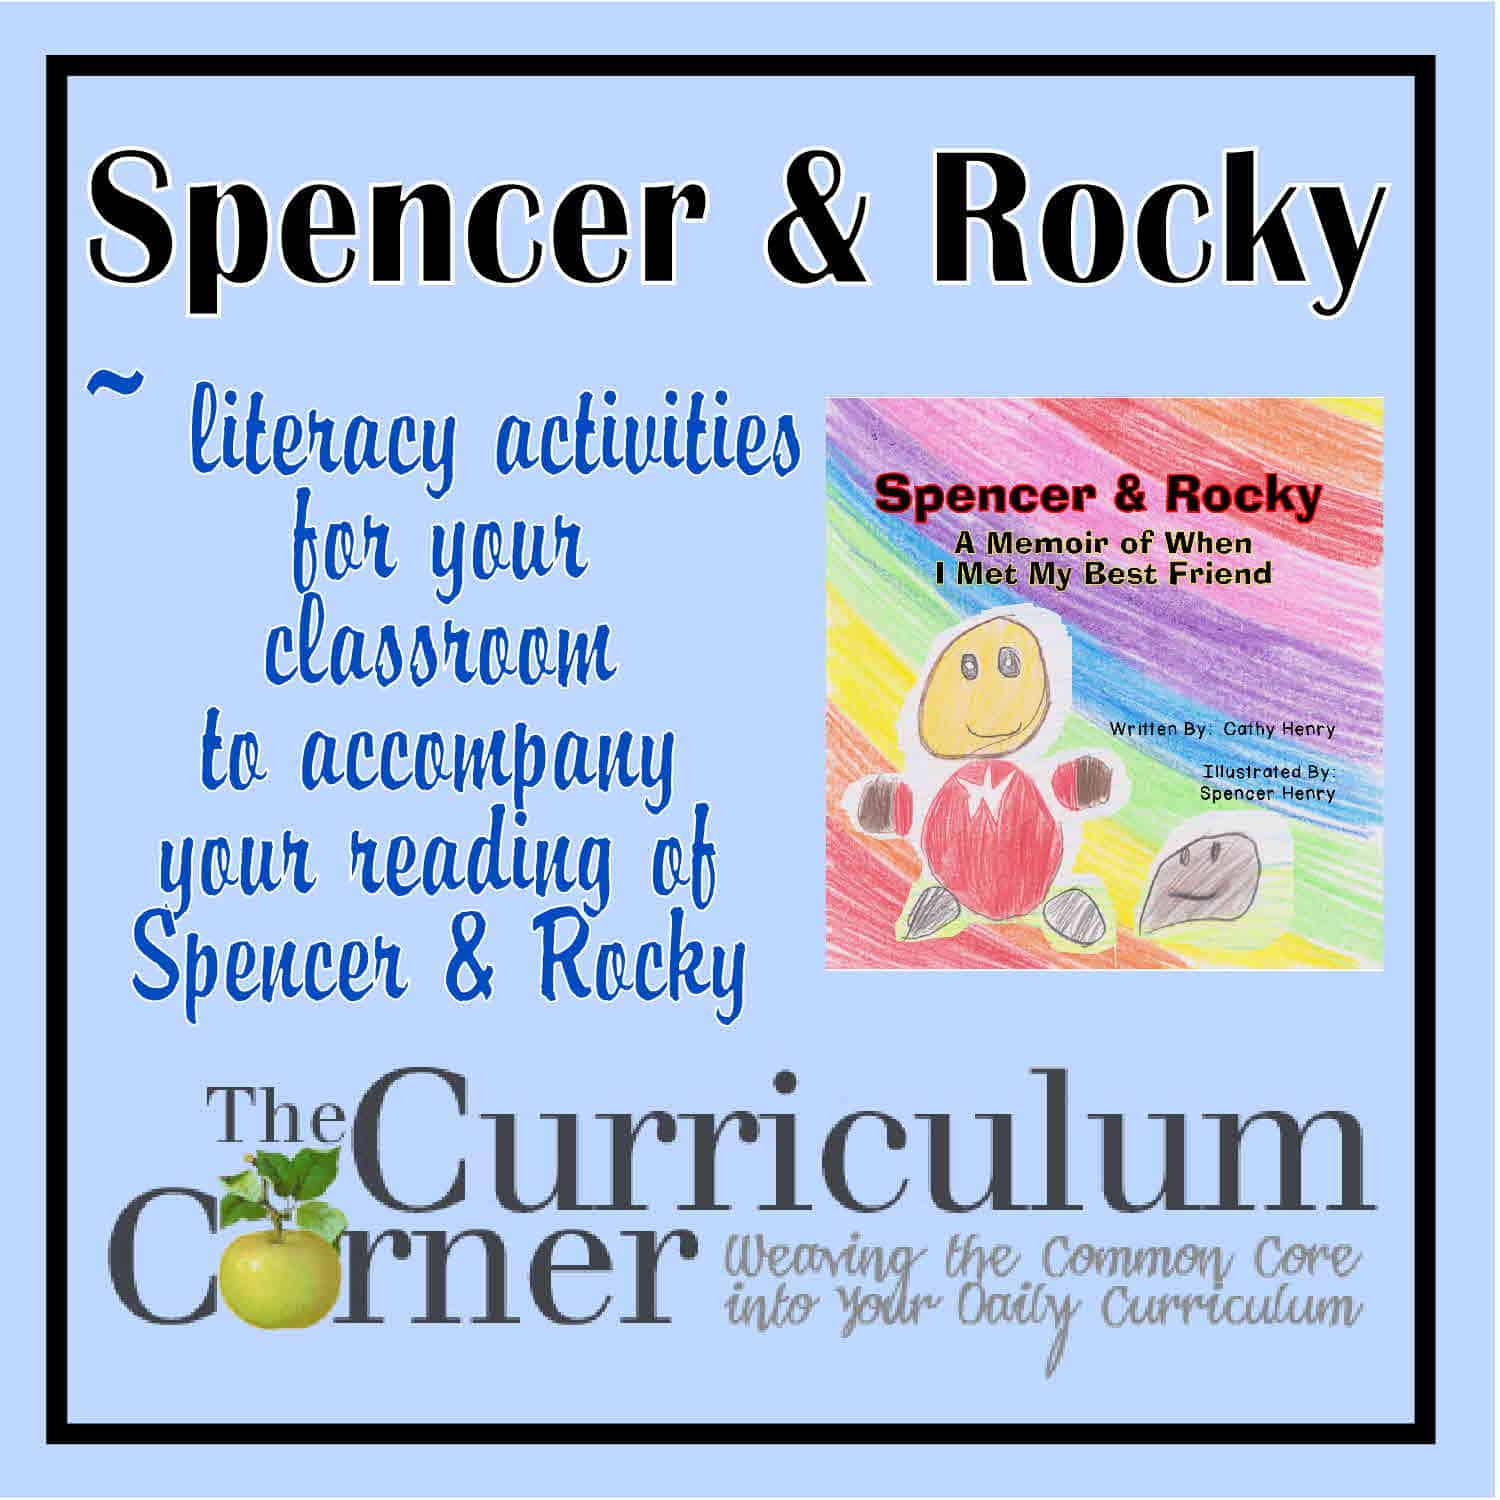 Spencer & Rocky Reading Activities